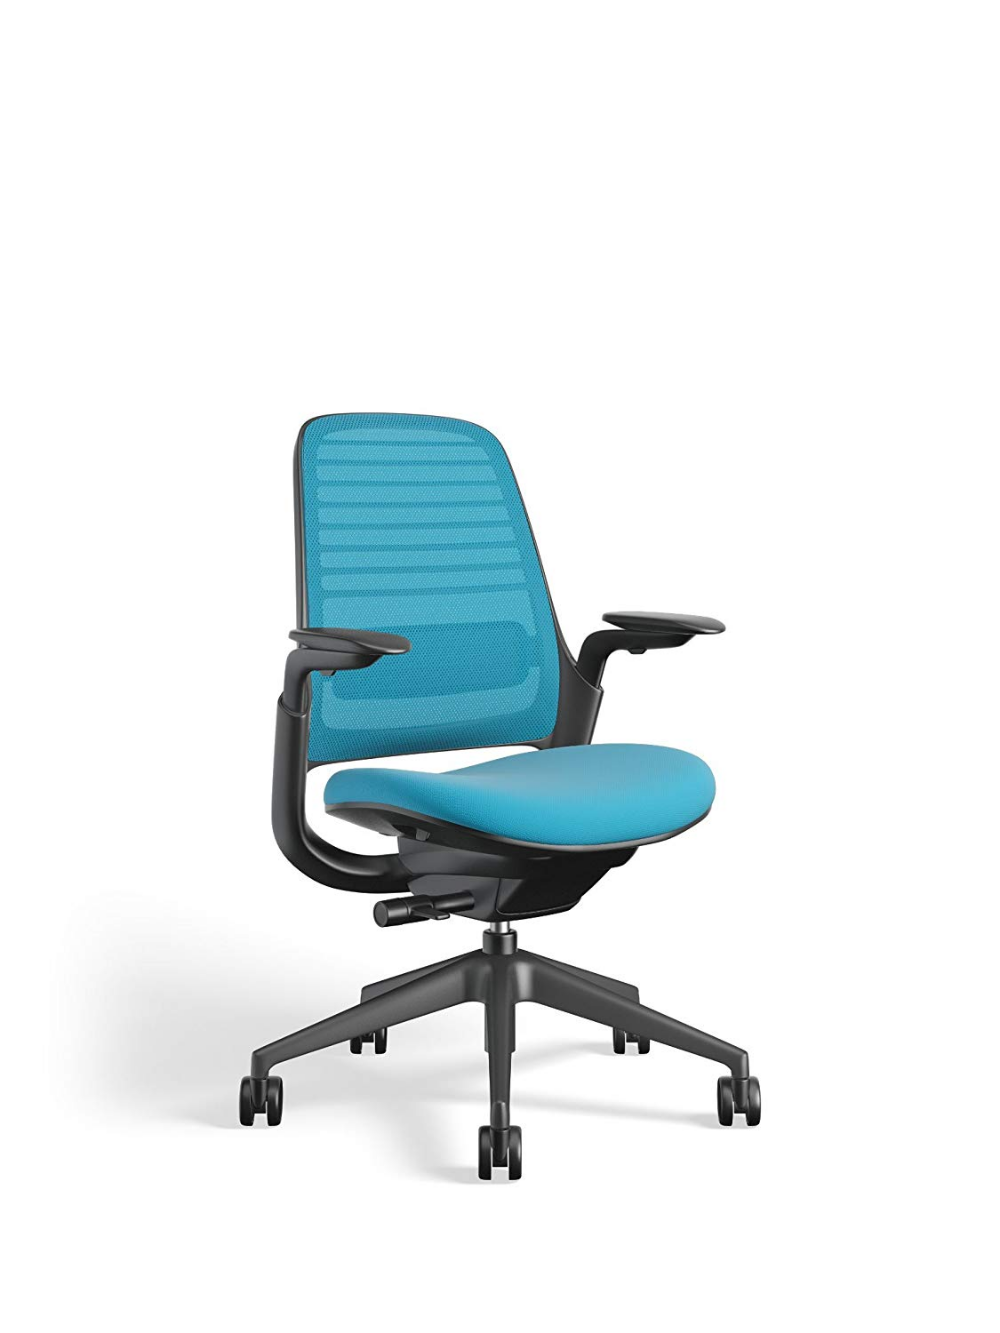 Steelcase 435A00 Series 1 Work Office Chair